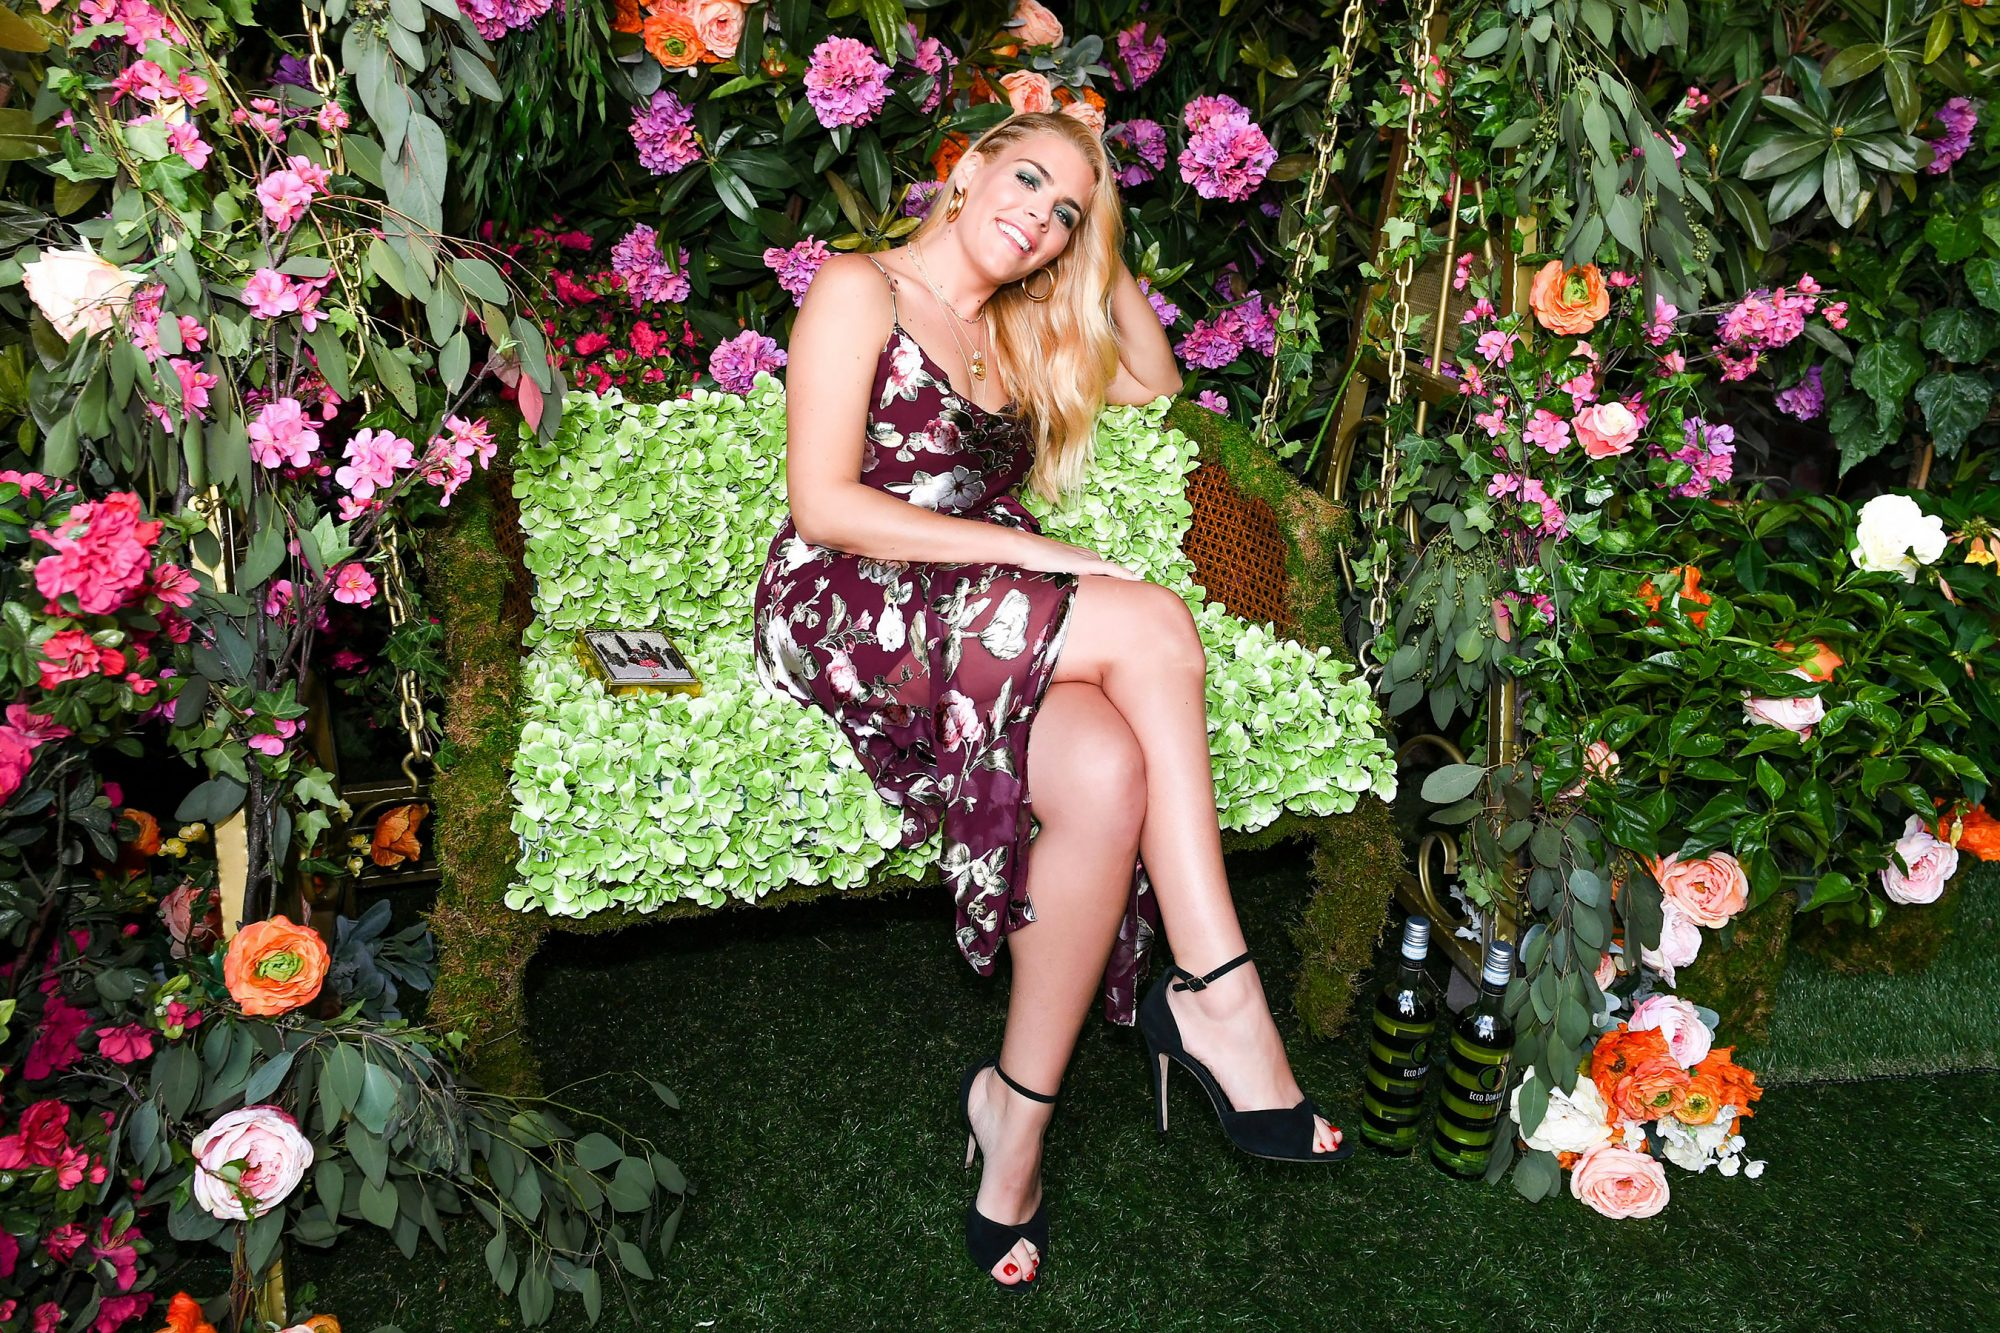 Alice and Olivia x Ecco Domani designer label launch, New York, USA - 07 Jun 2018